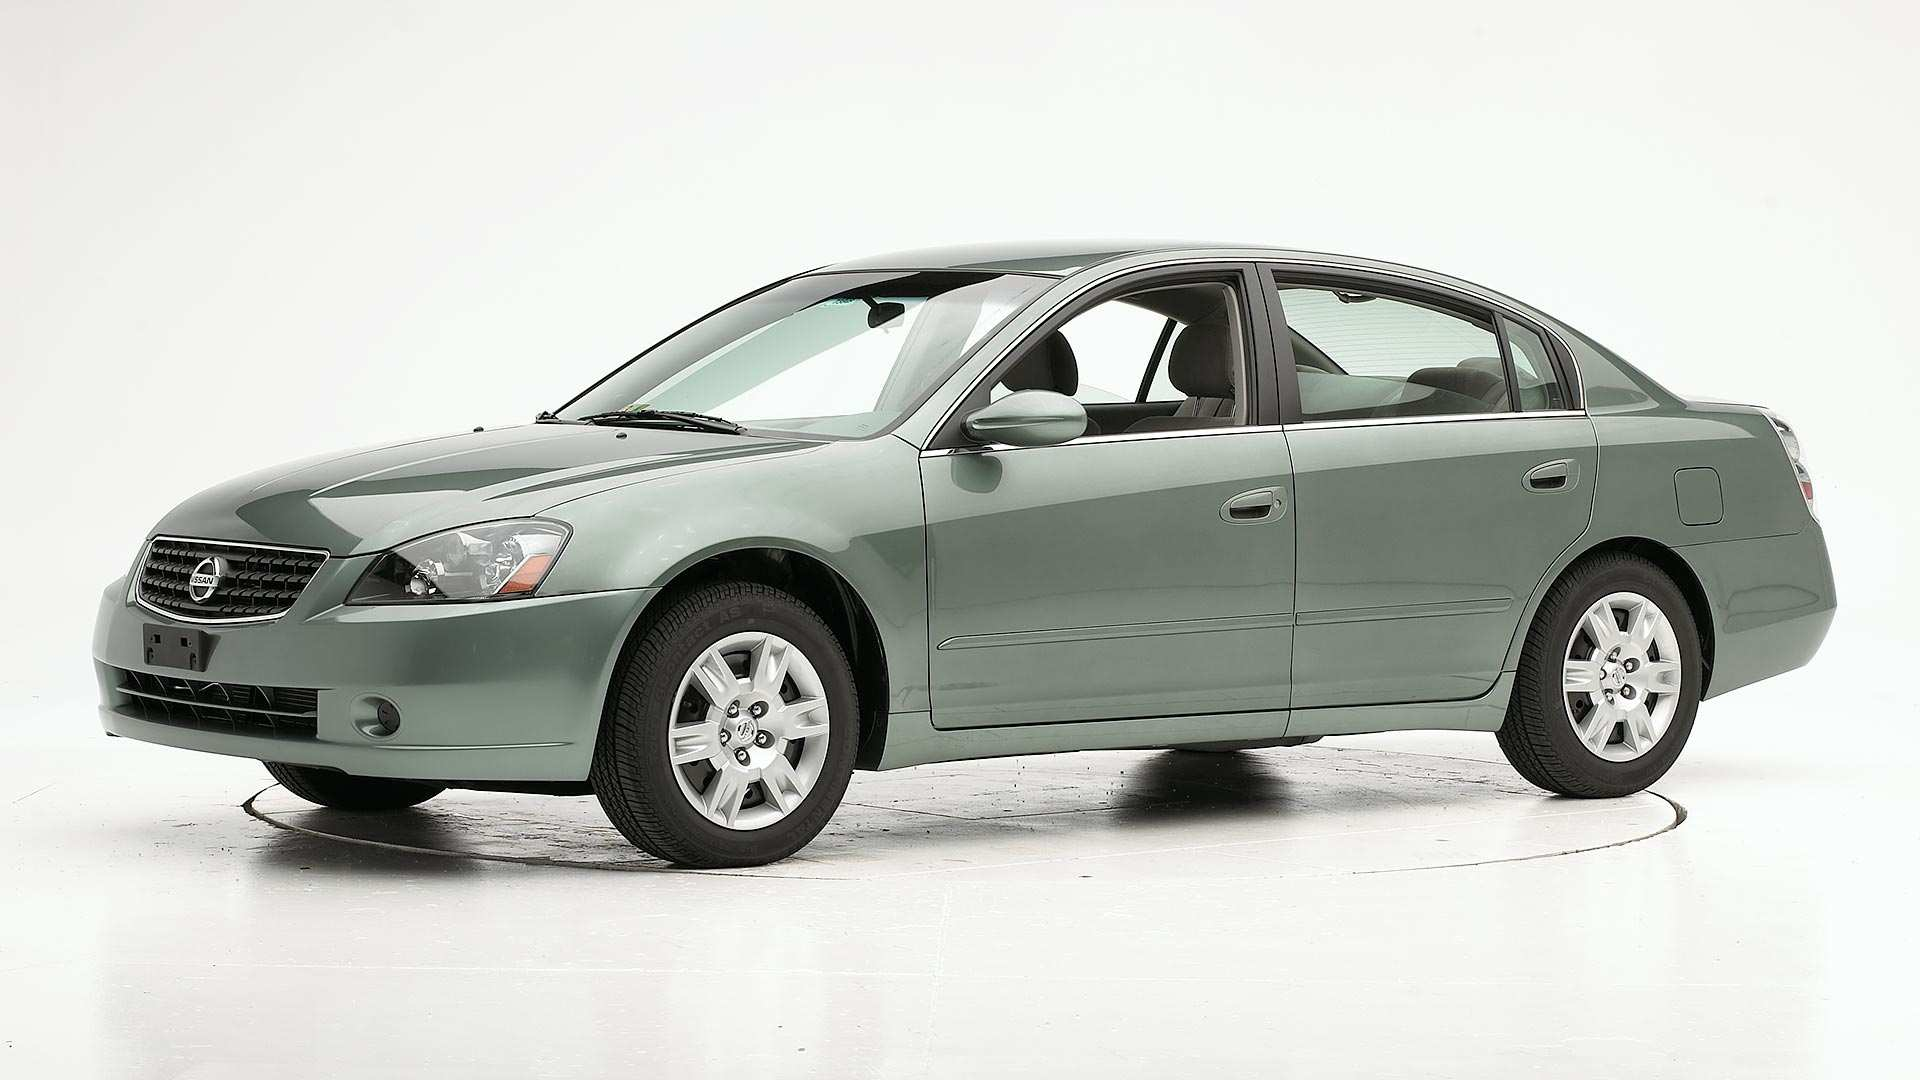 47 All New 2005 Nissan Altima First Drive